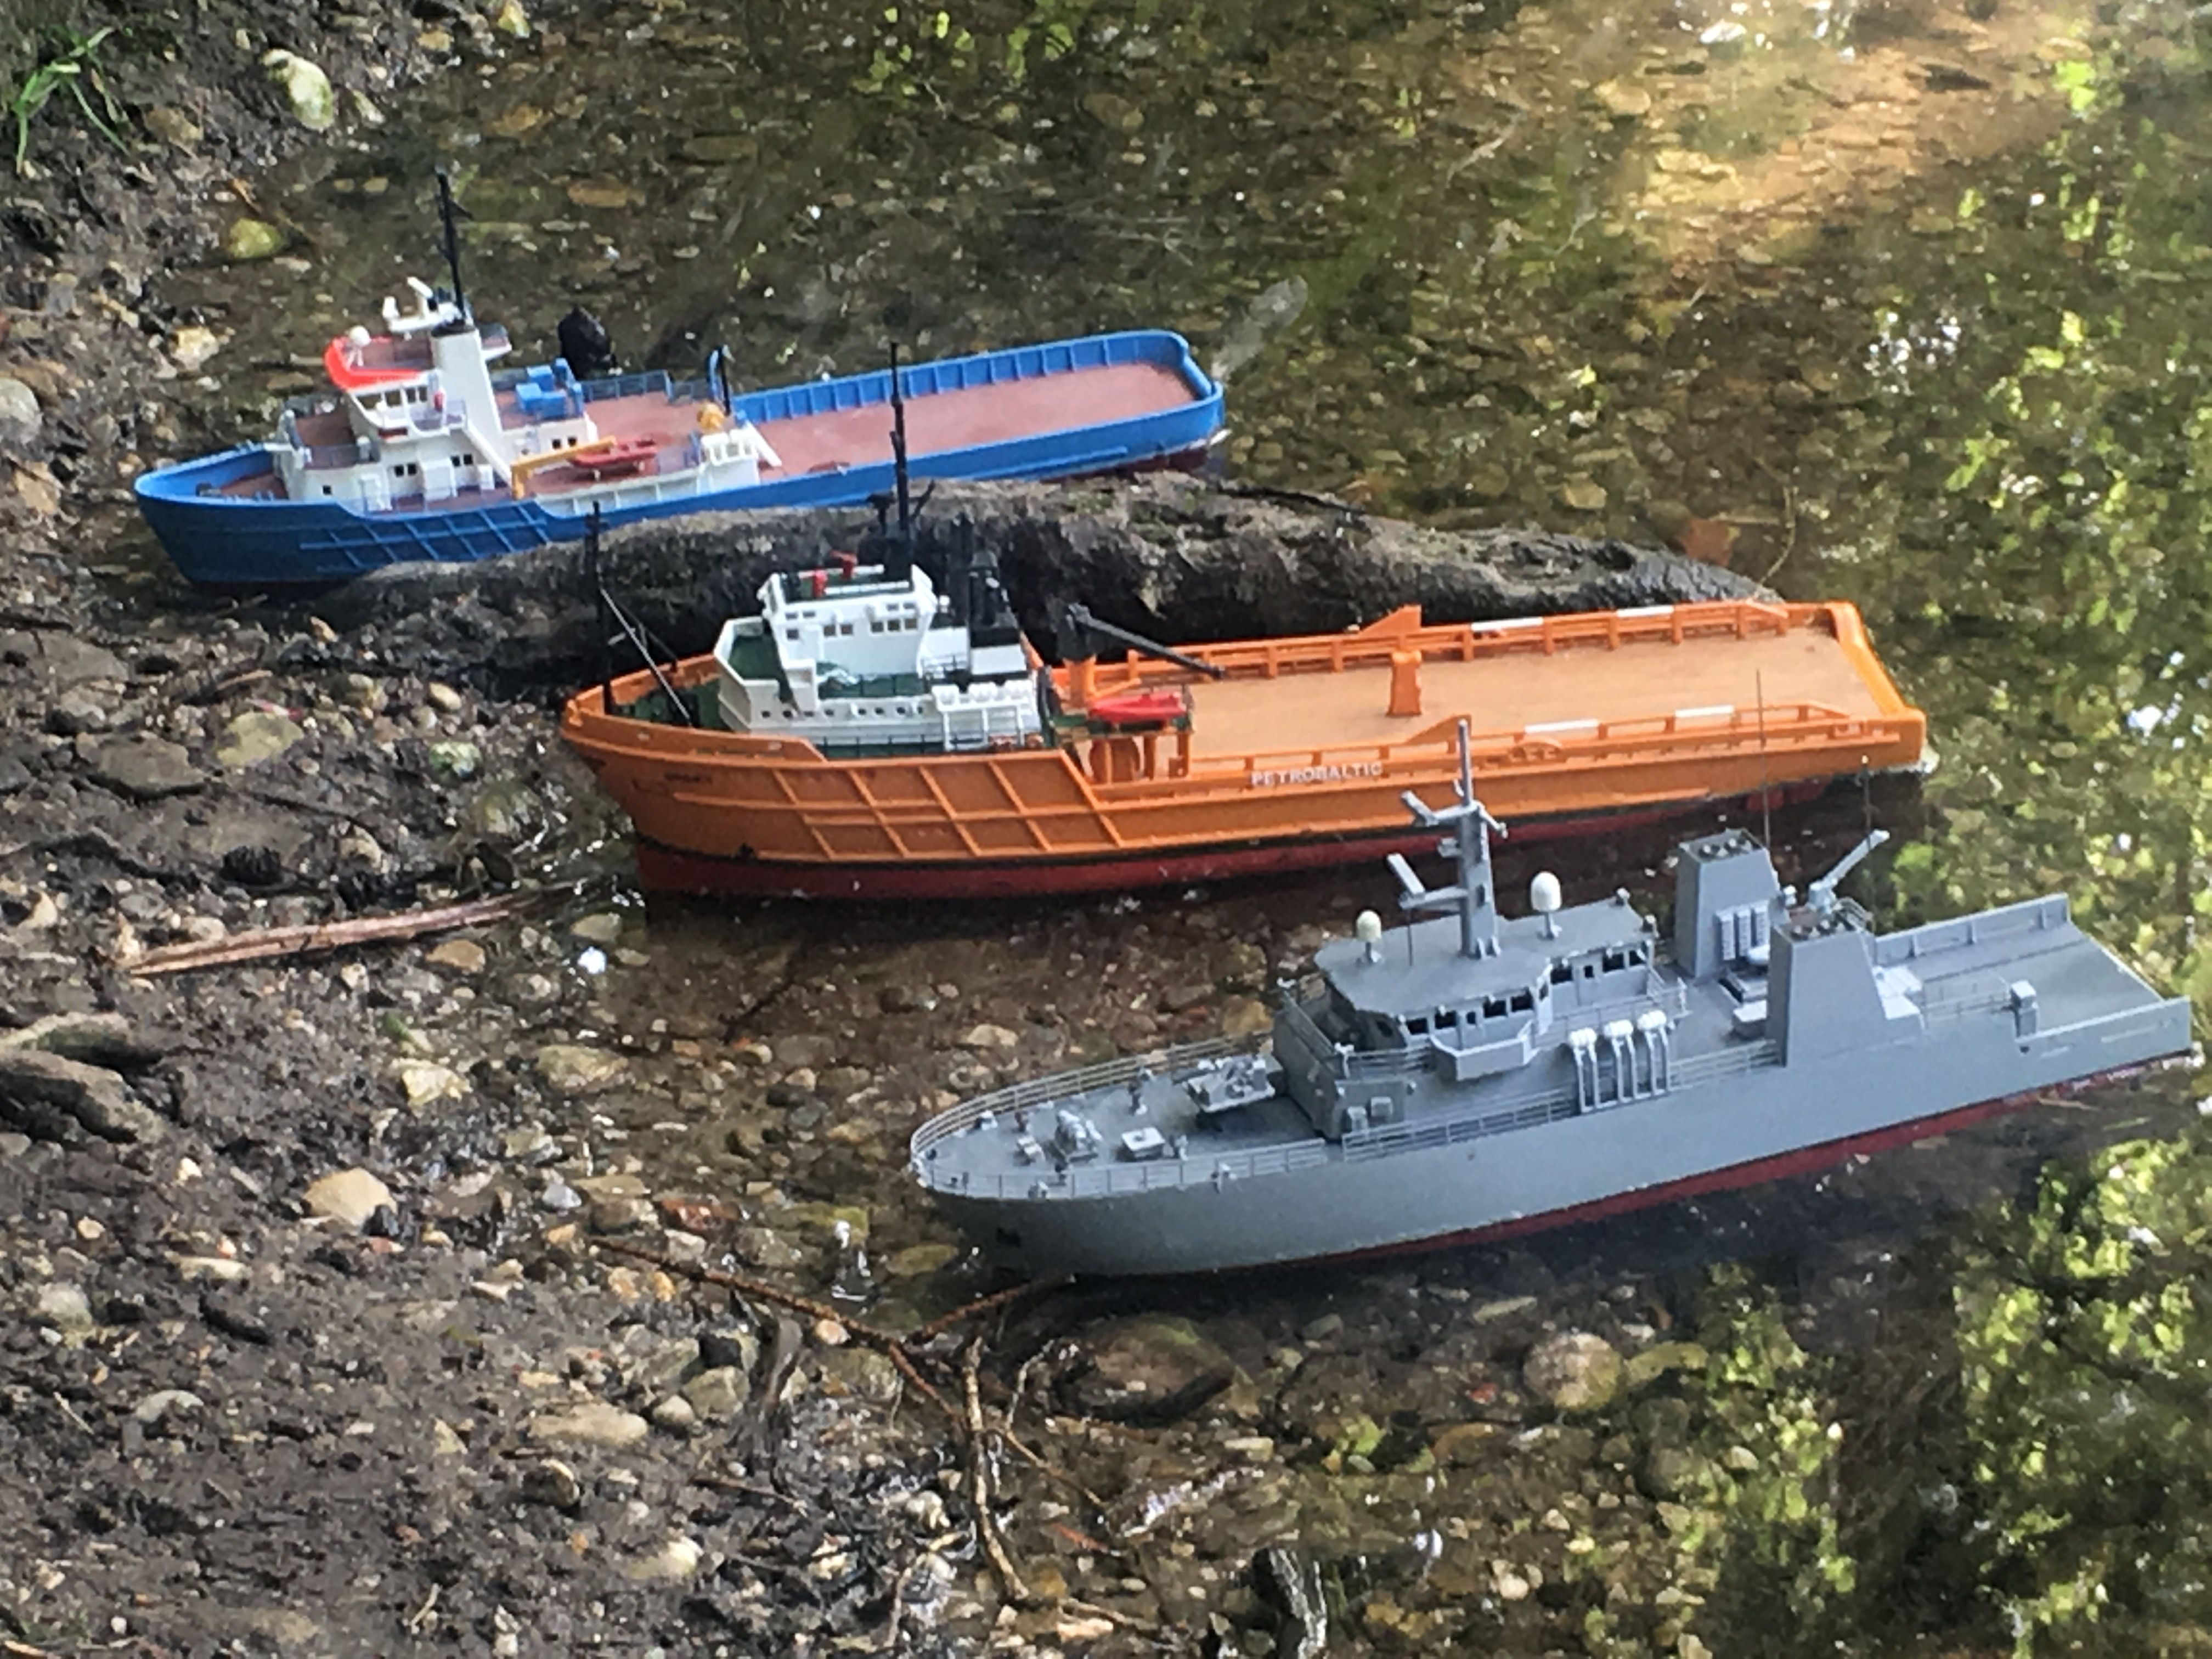 3D printed model boats in 1:200 with RC functionality - several are